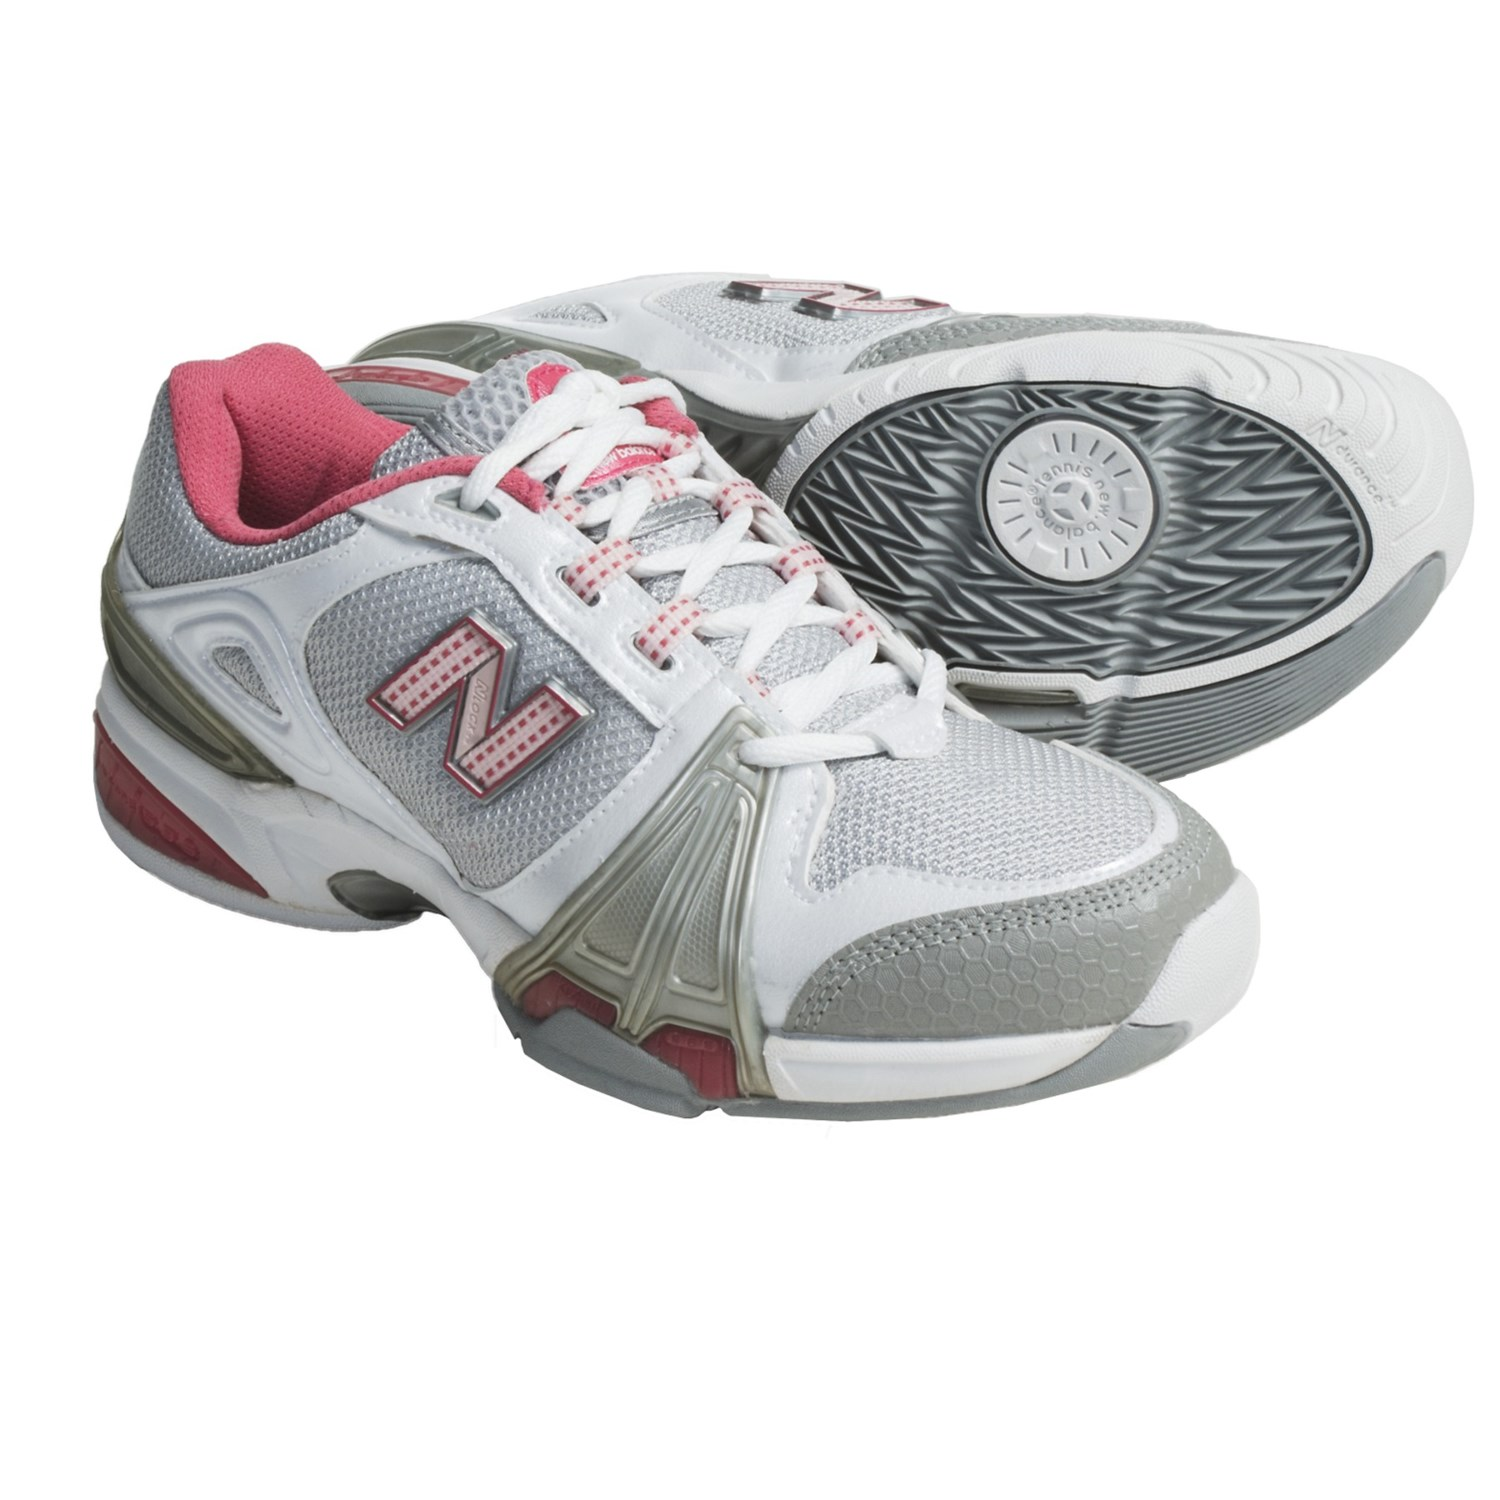 New Balance 1004 Tennis Shoes (For Women) - Save 33